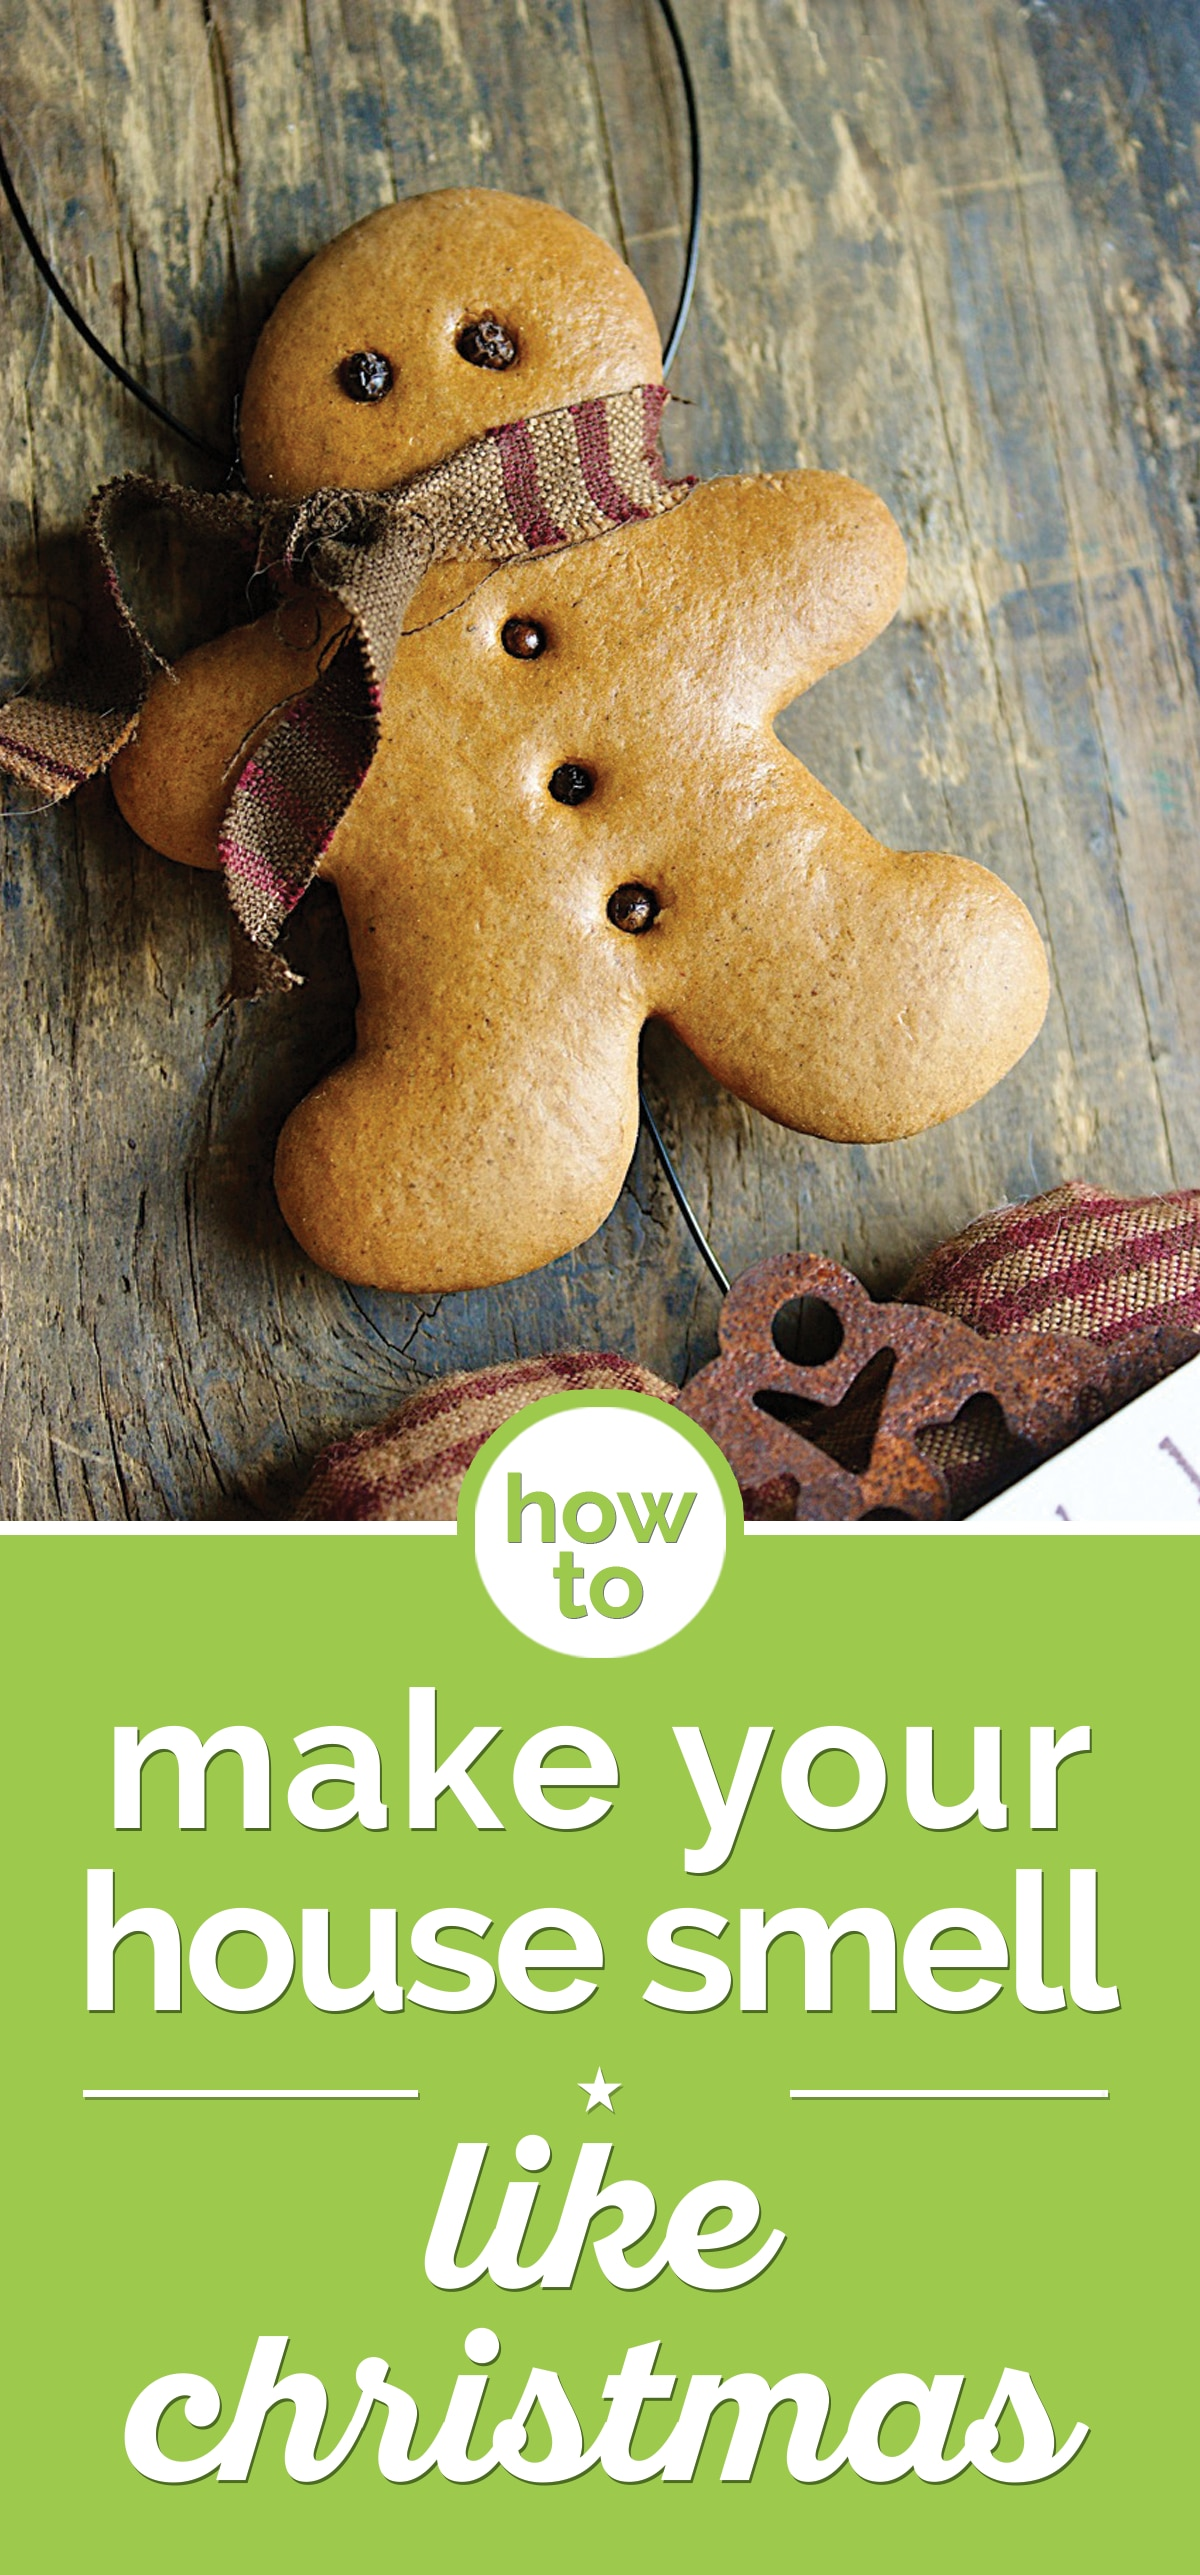 How to make your house smell like christmas thegoodstuff for What makes house smell good